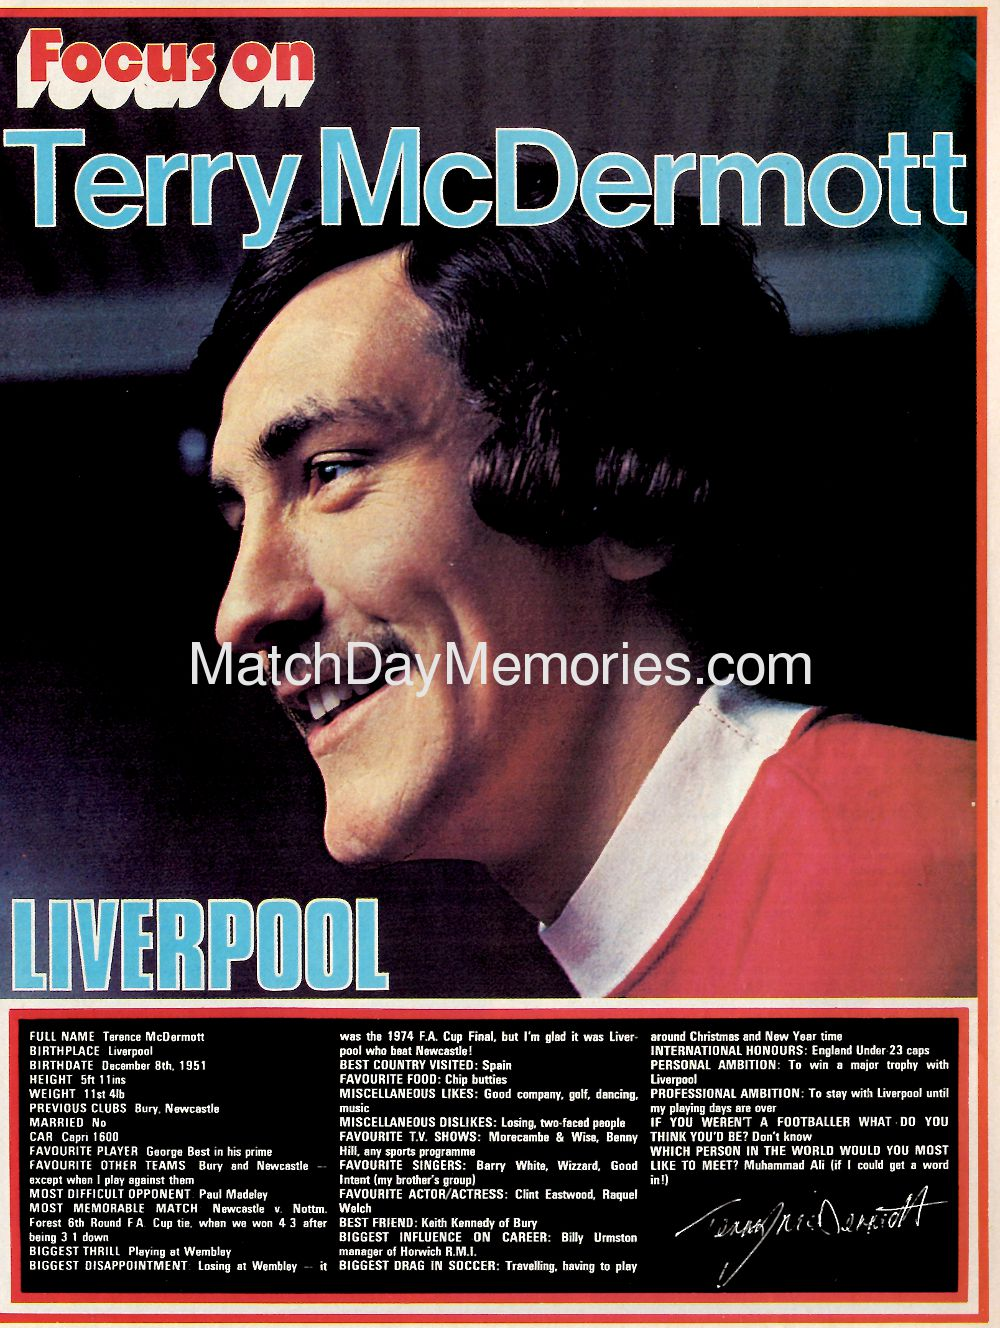 Focus on Terry McDermott